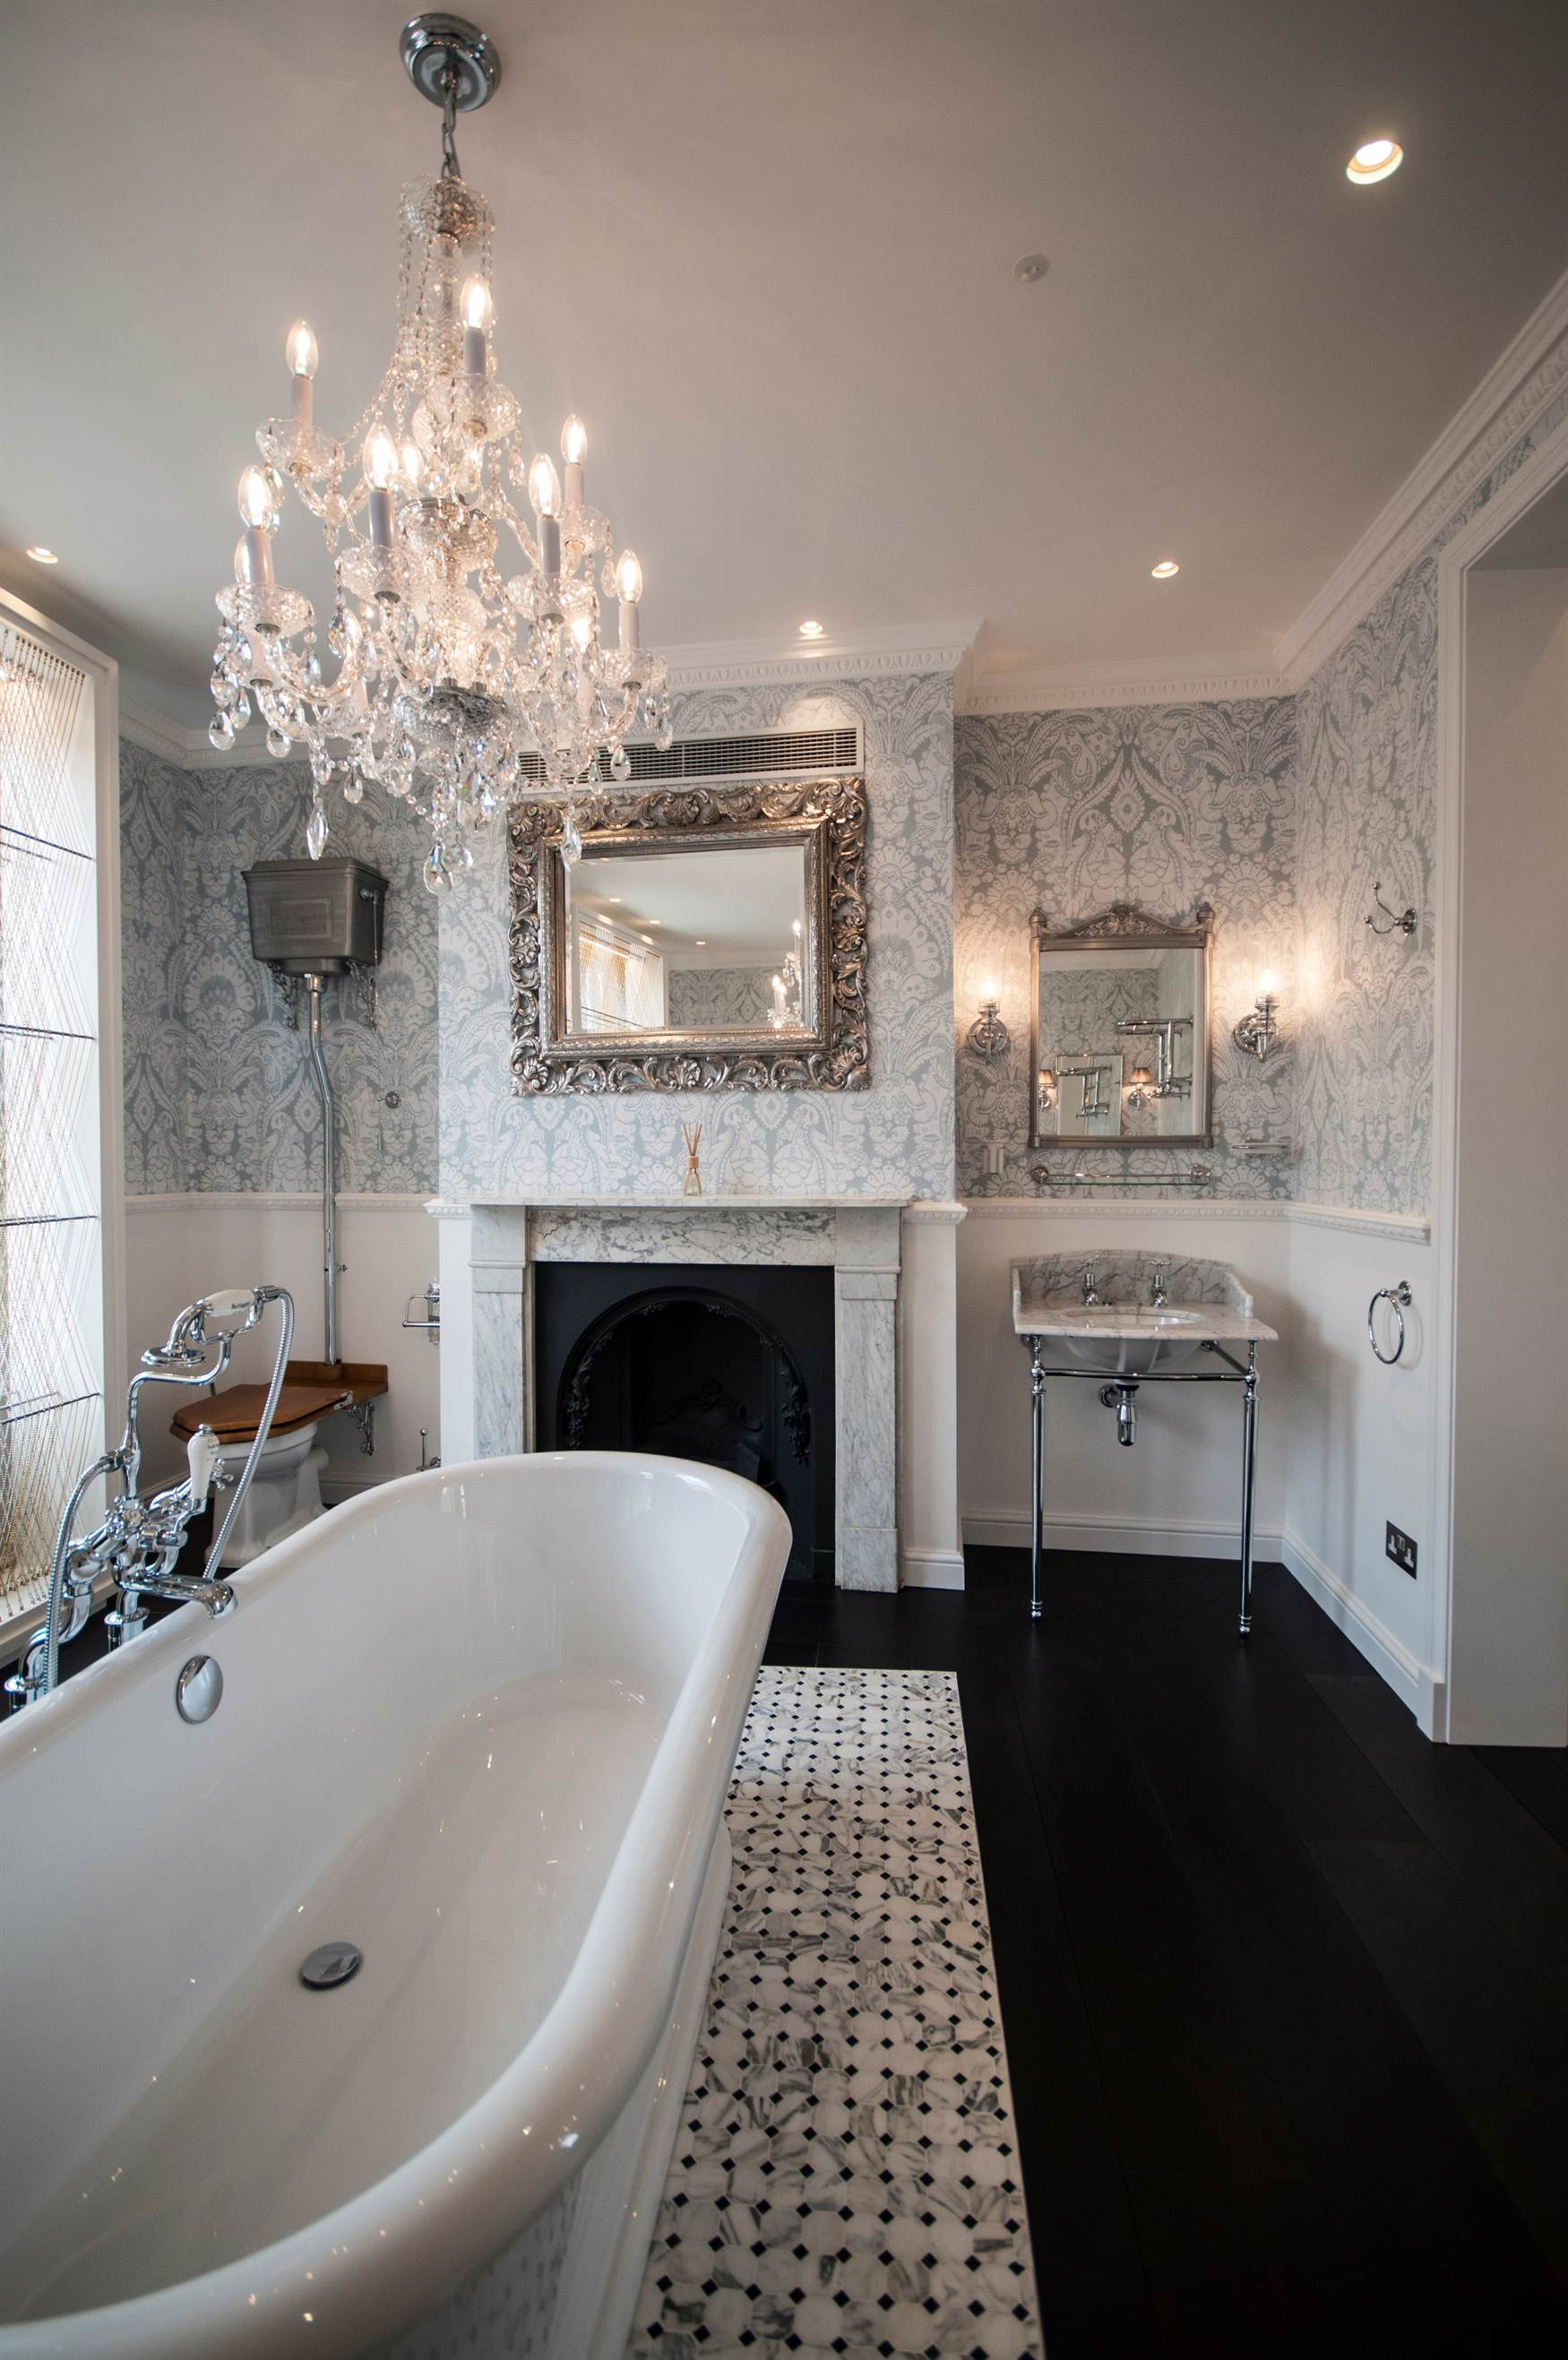 Trimless downlights with chandelier